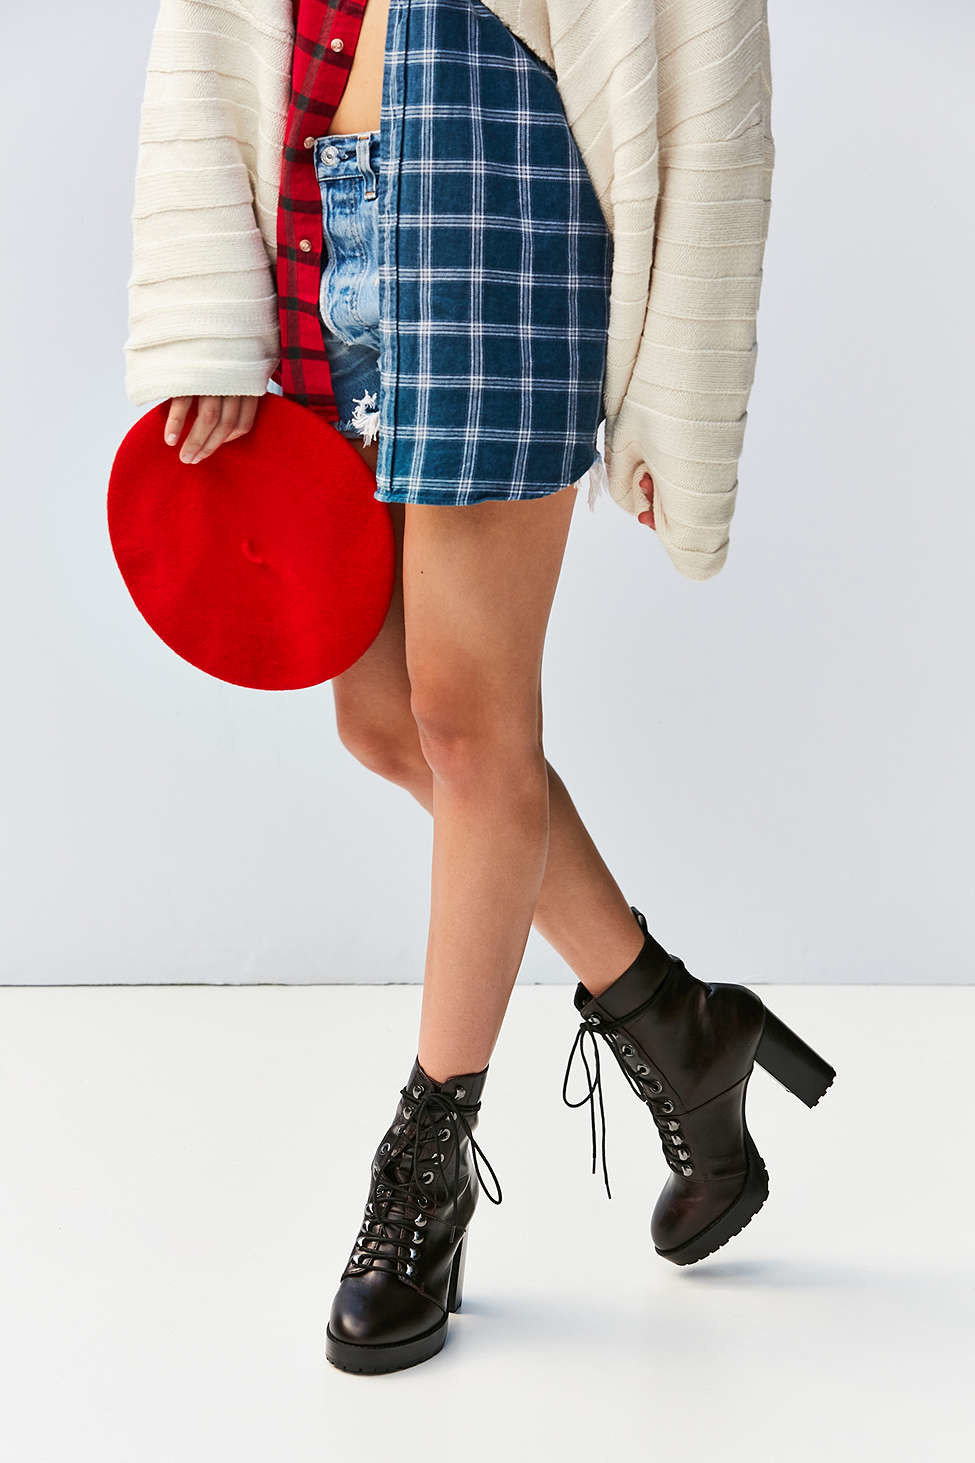 Fall Travel Style + Design Travel Shop person footwear shoe joint fashion model wearing tartan leg human leg fashion plaid pattern Design thigh waist miniskirt knee girl dressed